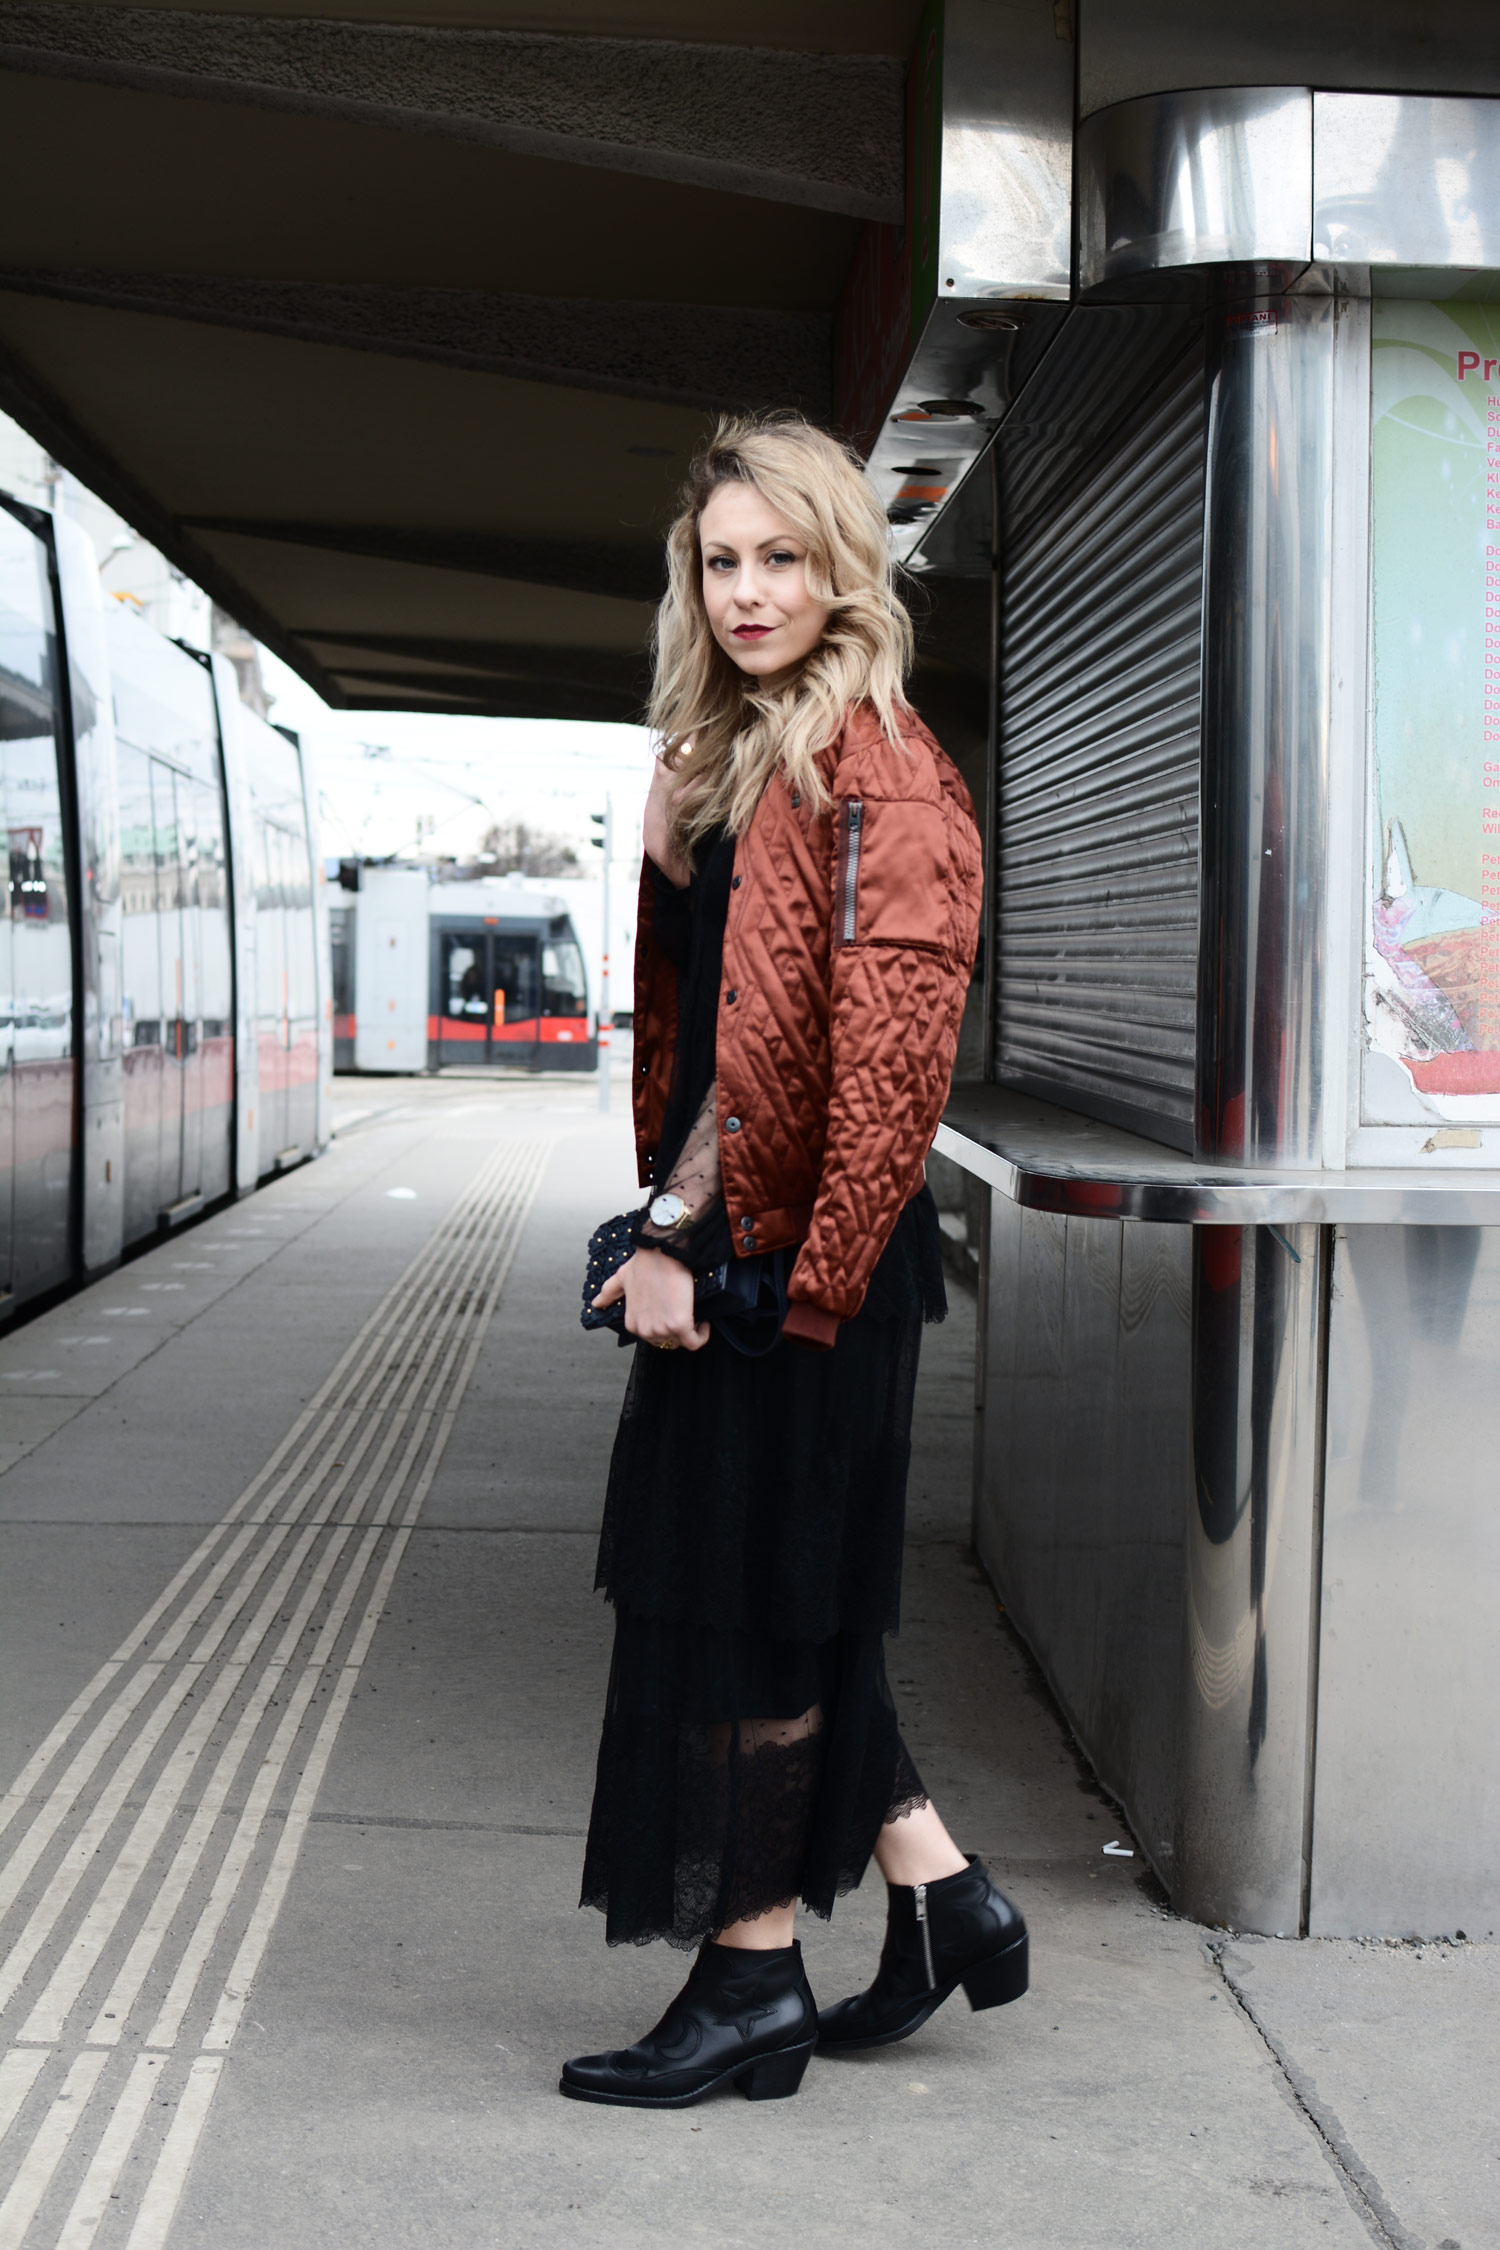 remix fashion, fashion blogger, zalando, style, style guide